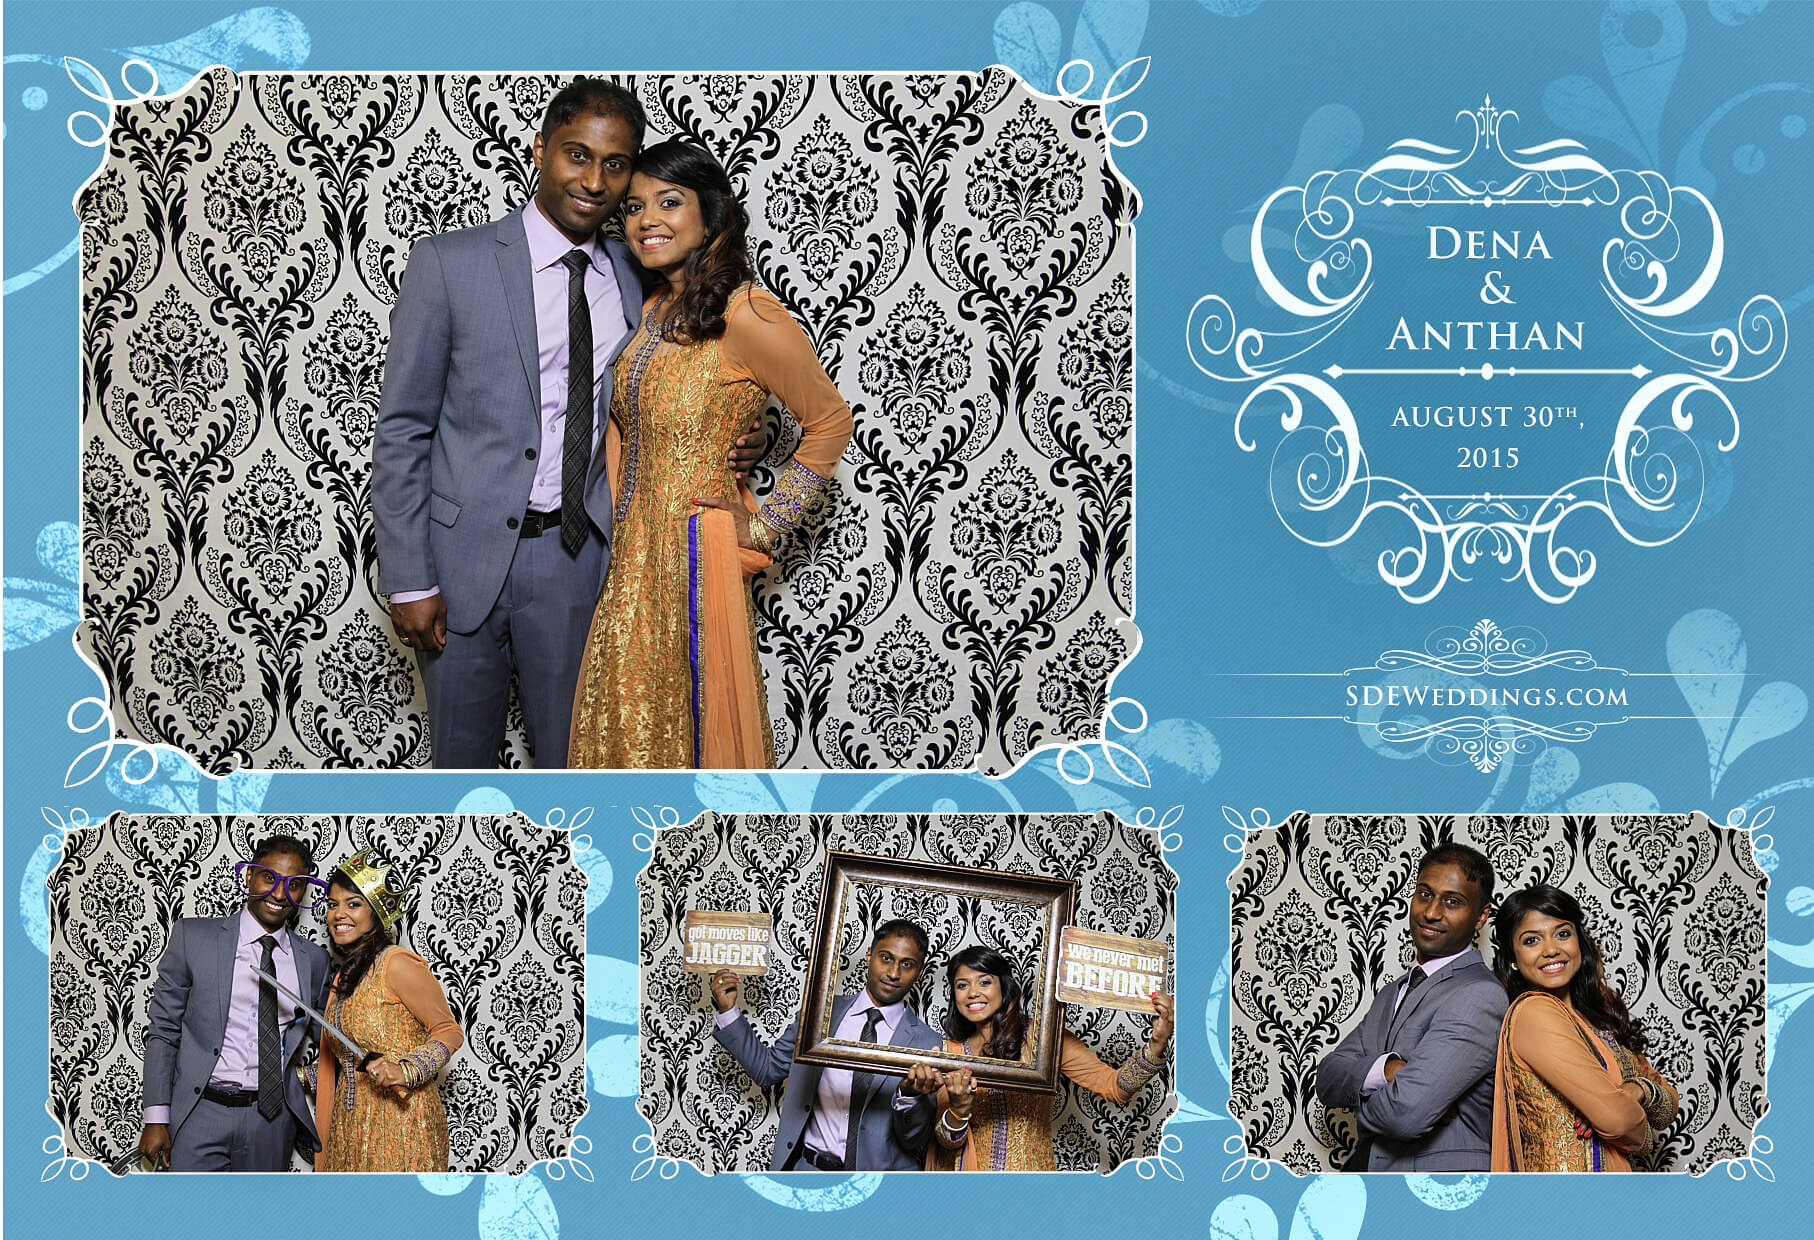 Toronto Photo Booth Rental at Peter and Paul Banquet Hall 8